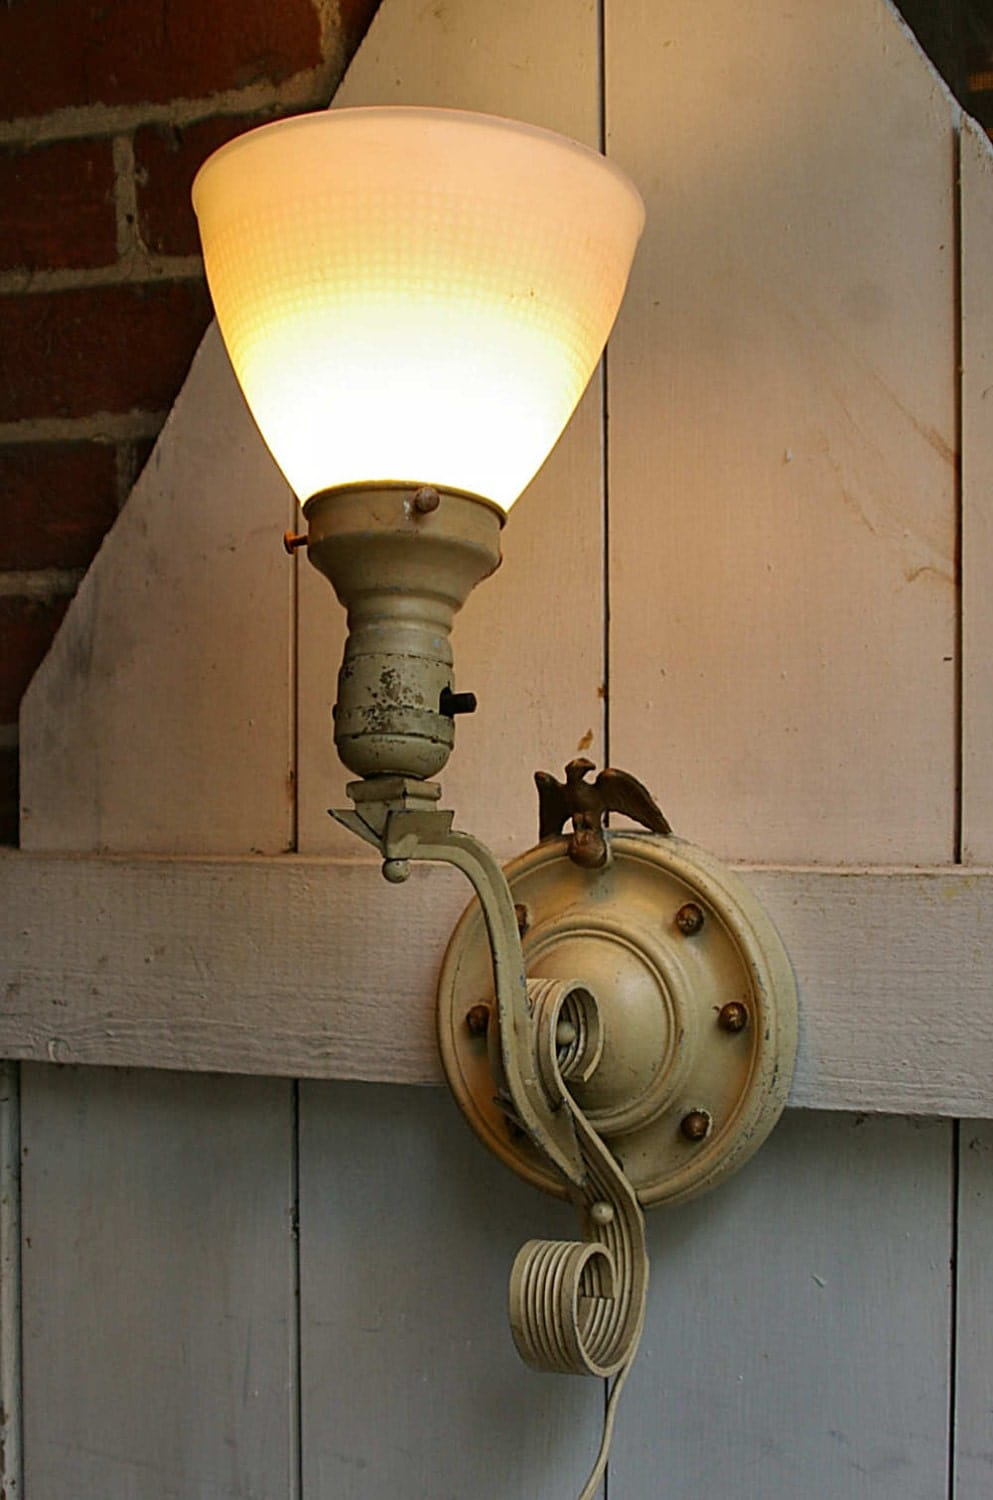 Electric Wall Sconce Light Plug In Wall Sconce by KickassStyle